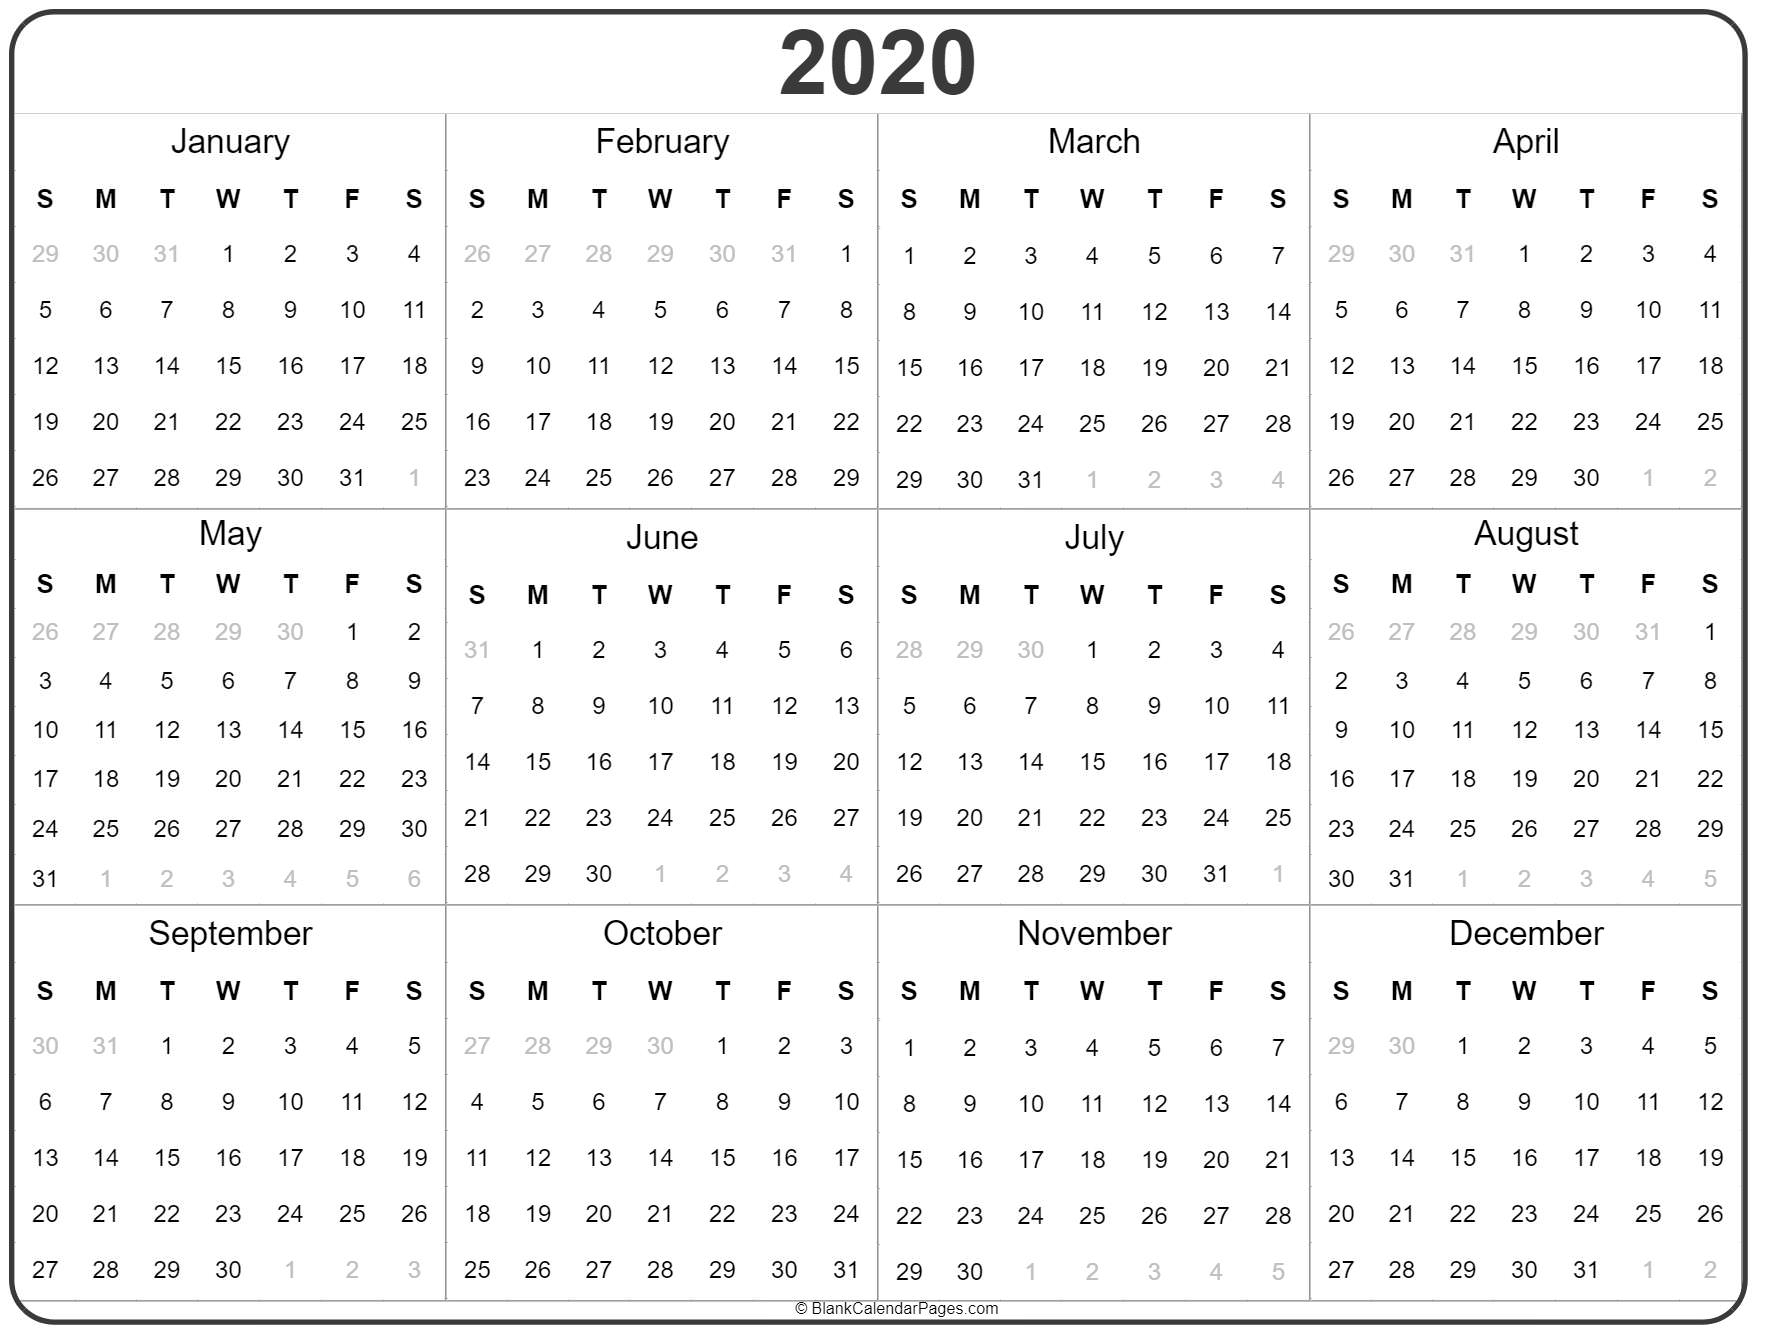 2020 Calendar Printable Yearly - Wpa.wpart.co